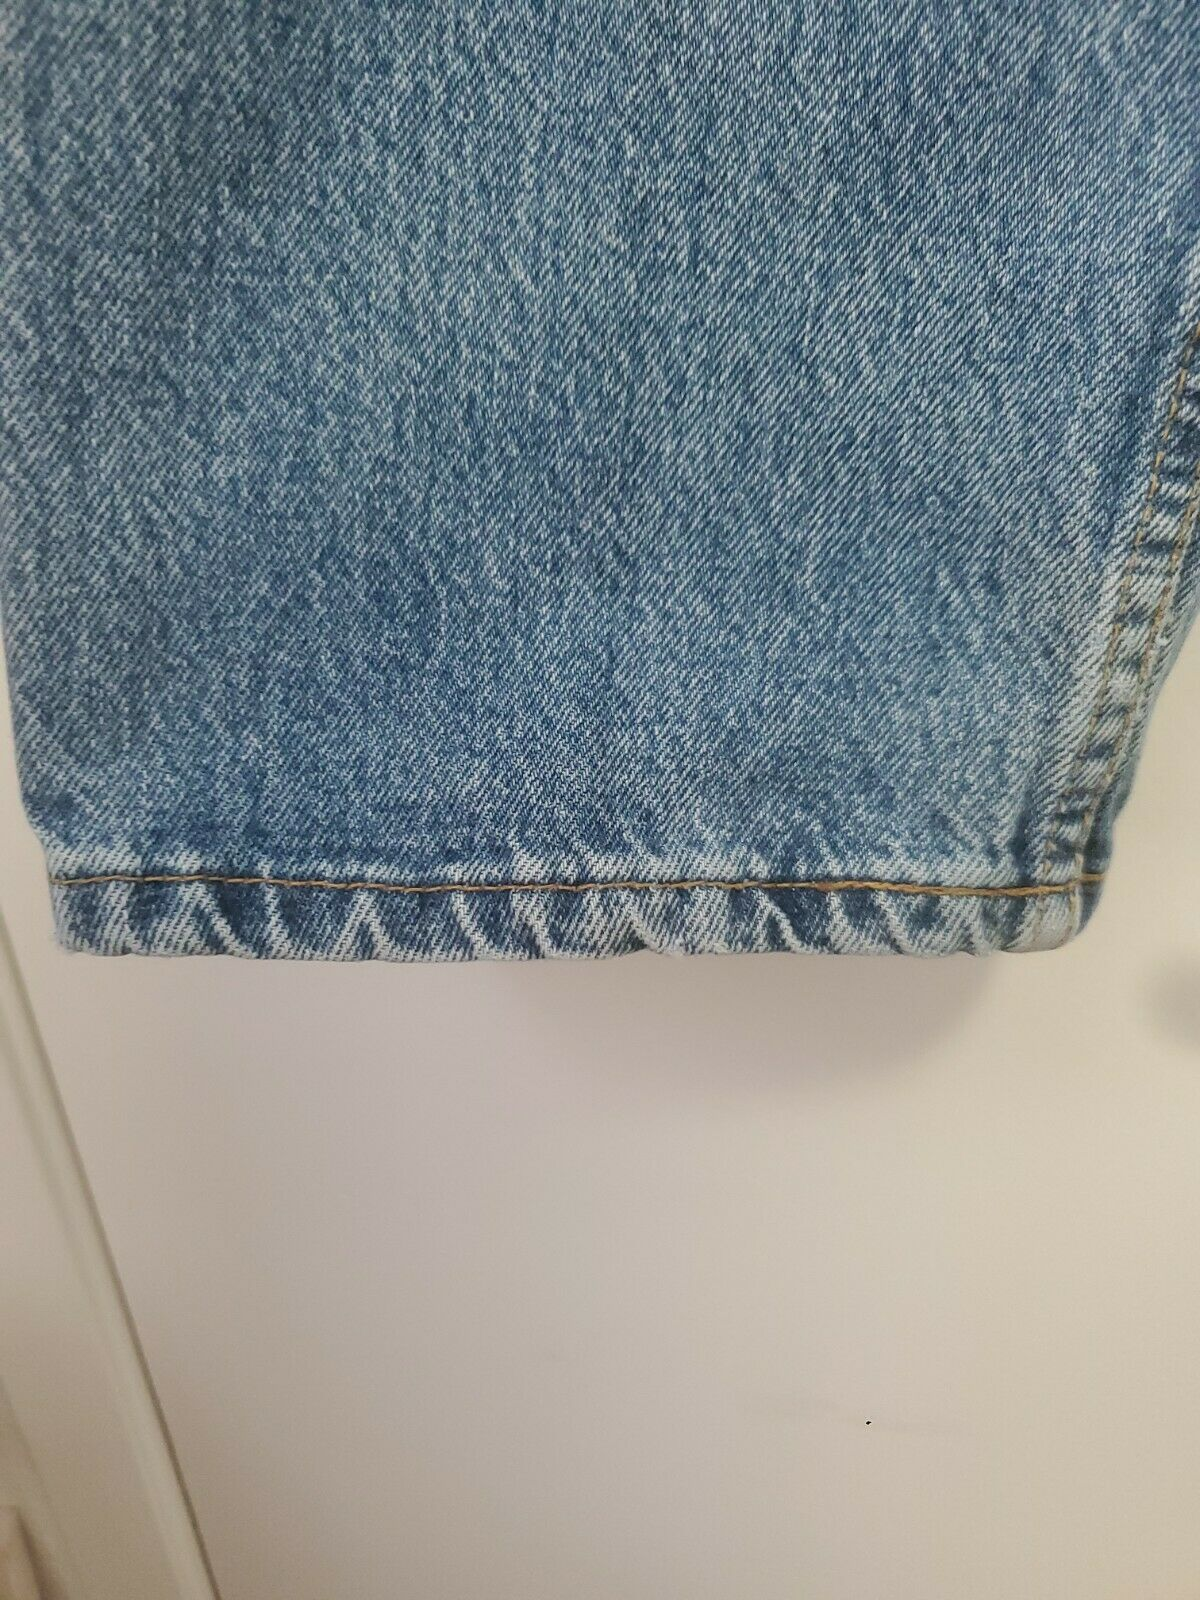 Vintage 501 Levis 34x32 Made In USA - image 3